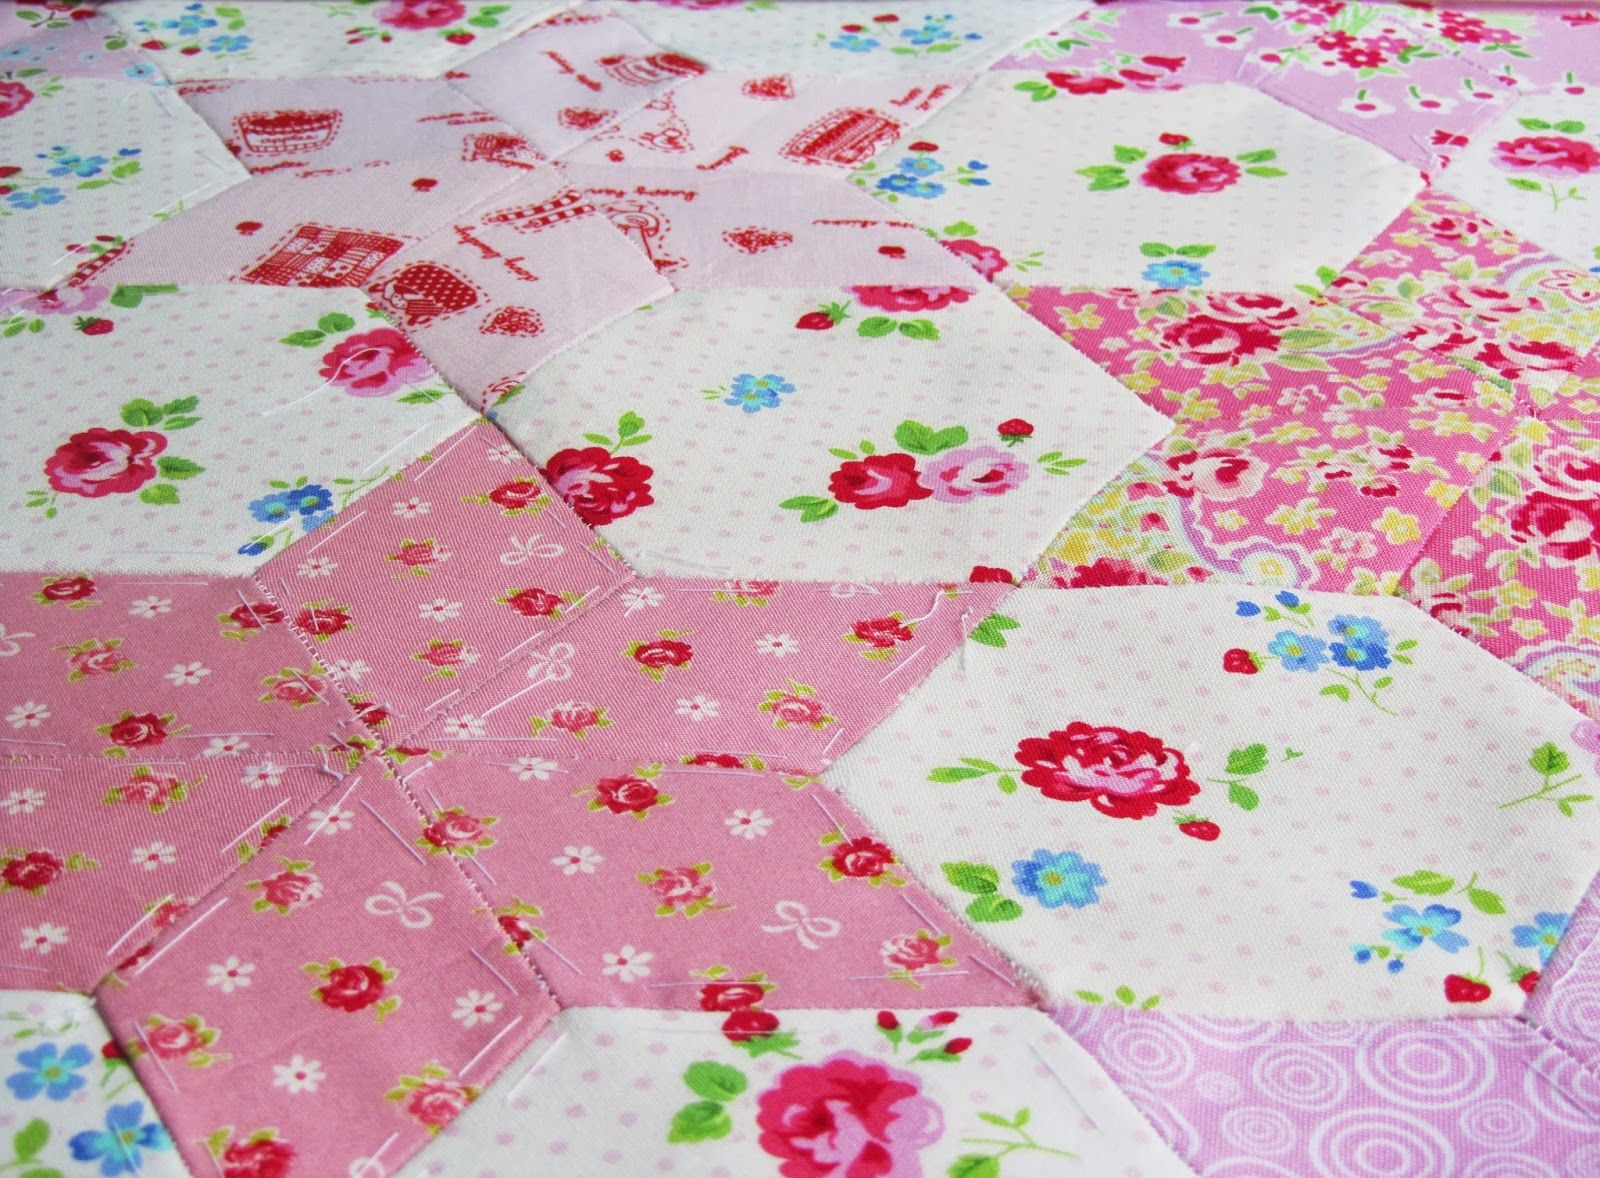 Piercing ideas for quilt backing  Helen Philipps  HEXAGONS  Pinterest  English paper piecing Paper